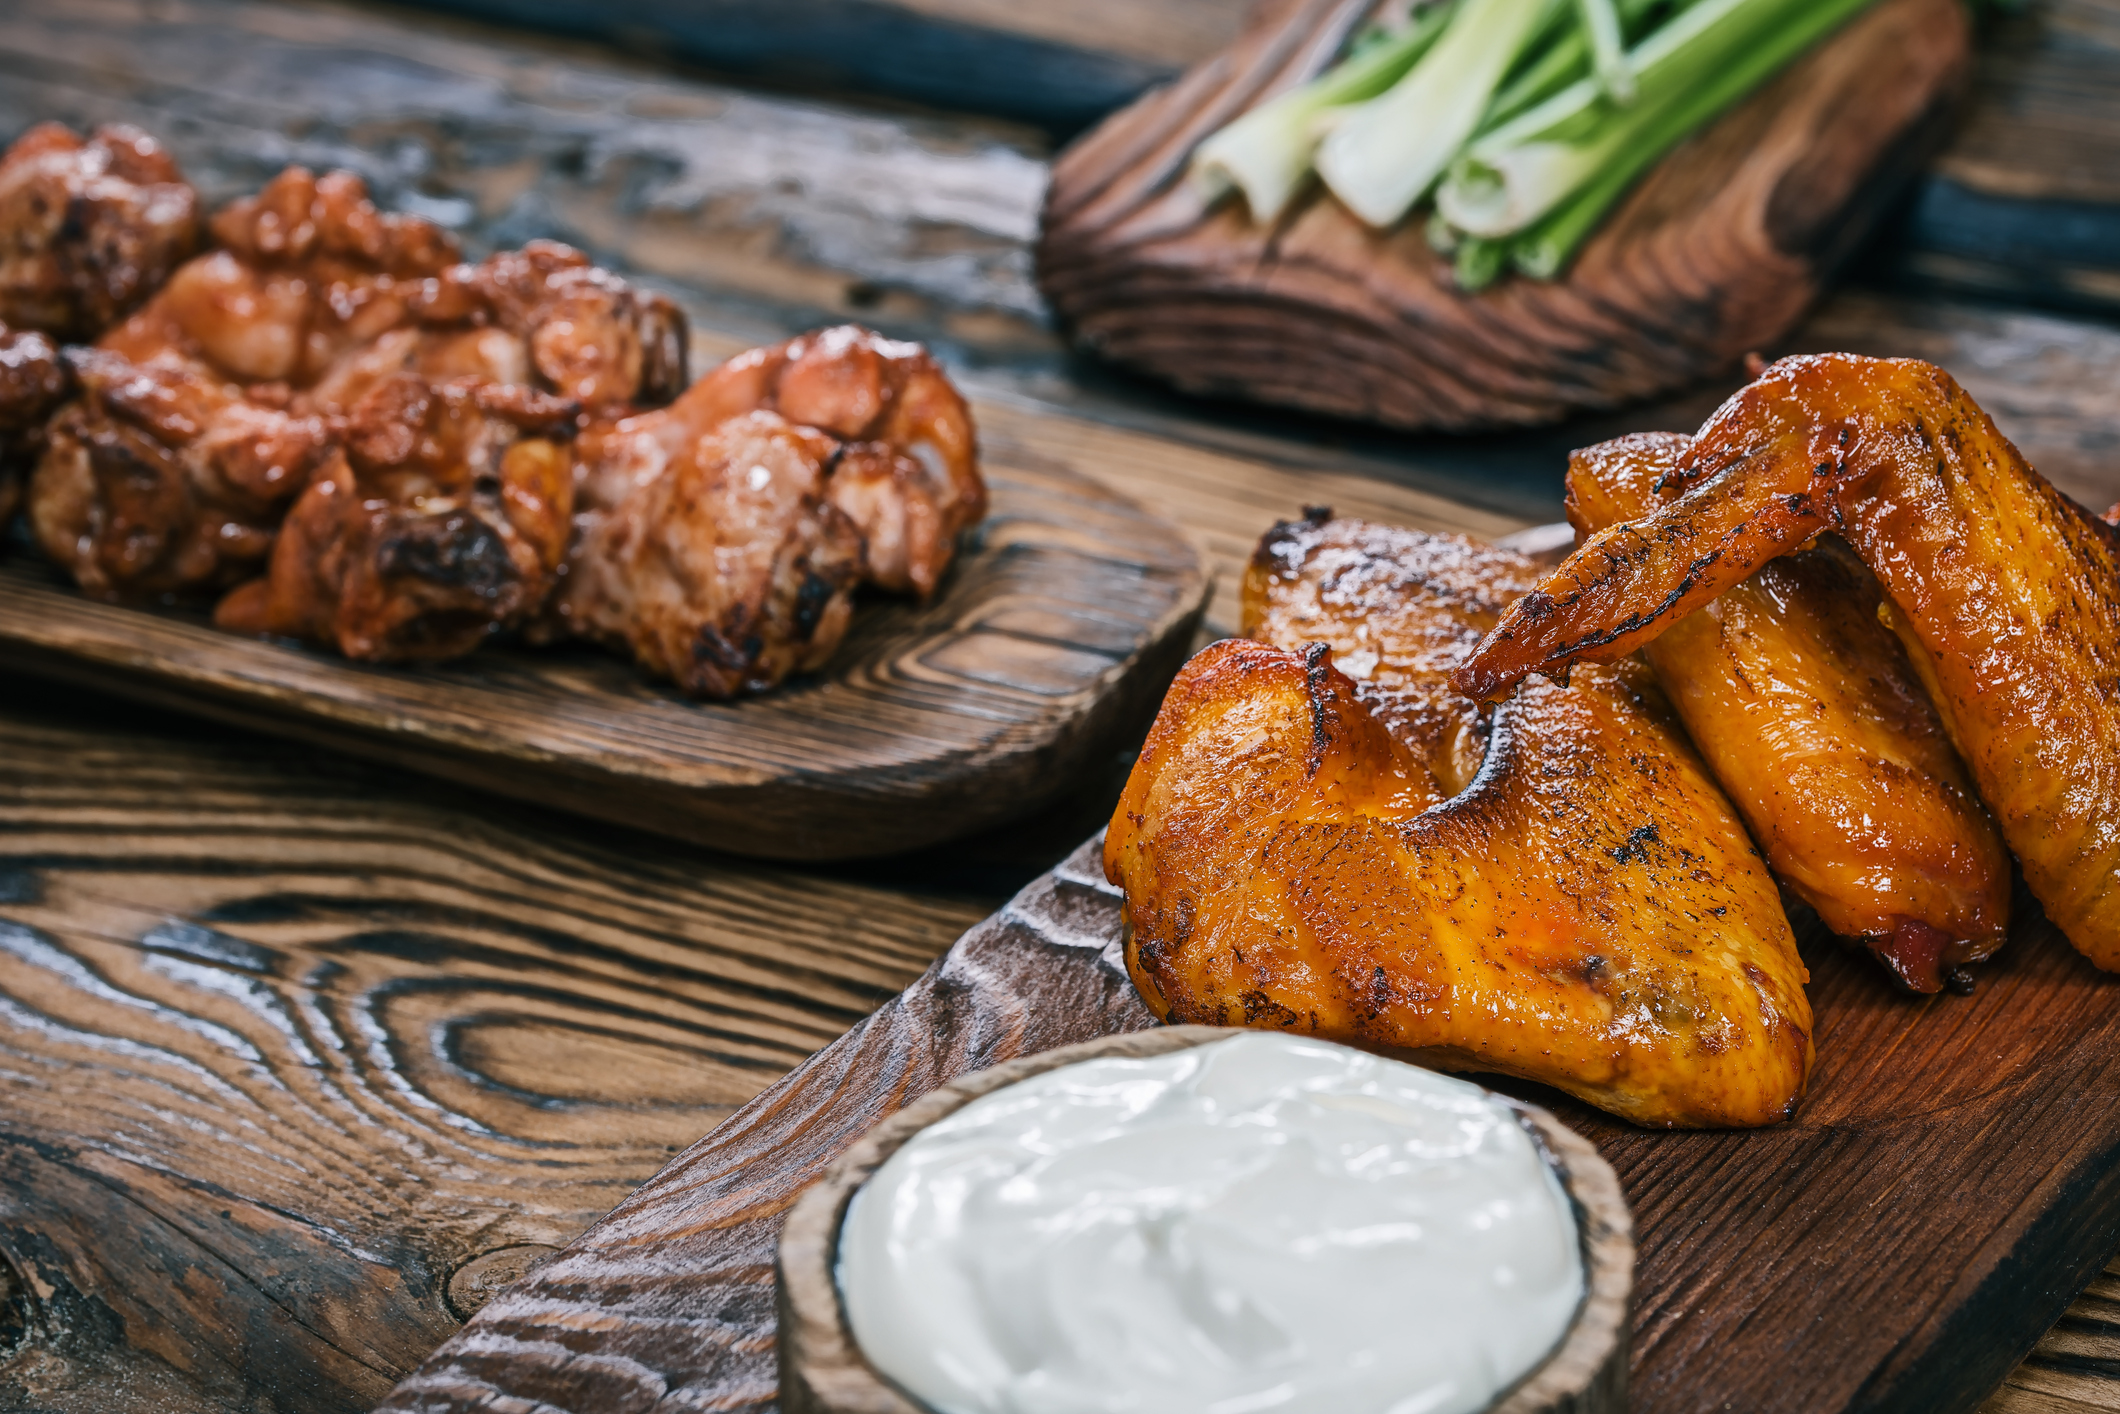 Chicken wings served on wood